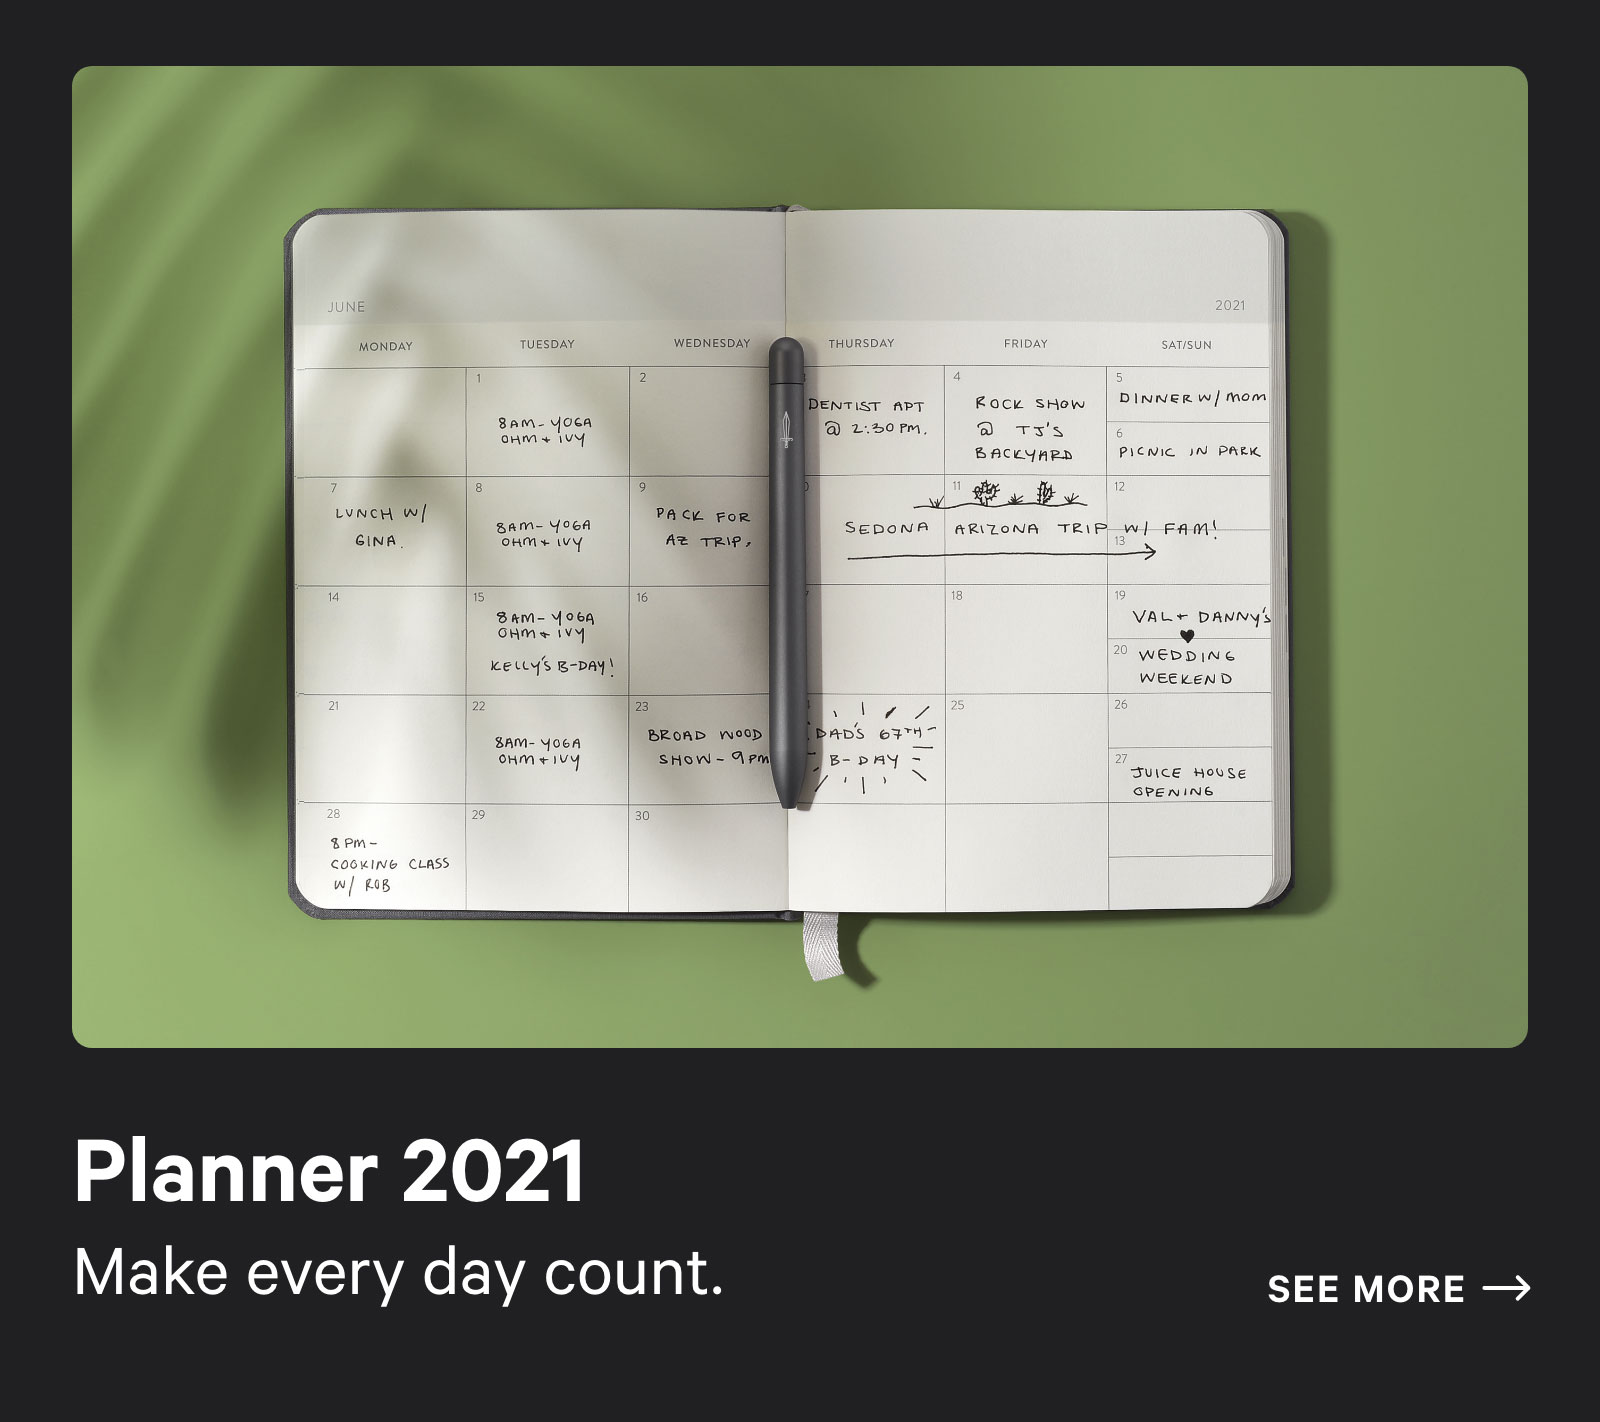 Planner 2021. Make every day count. See more ?